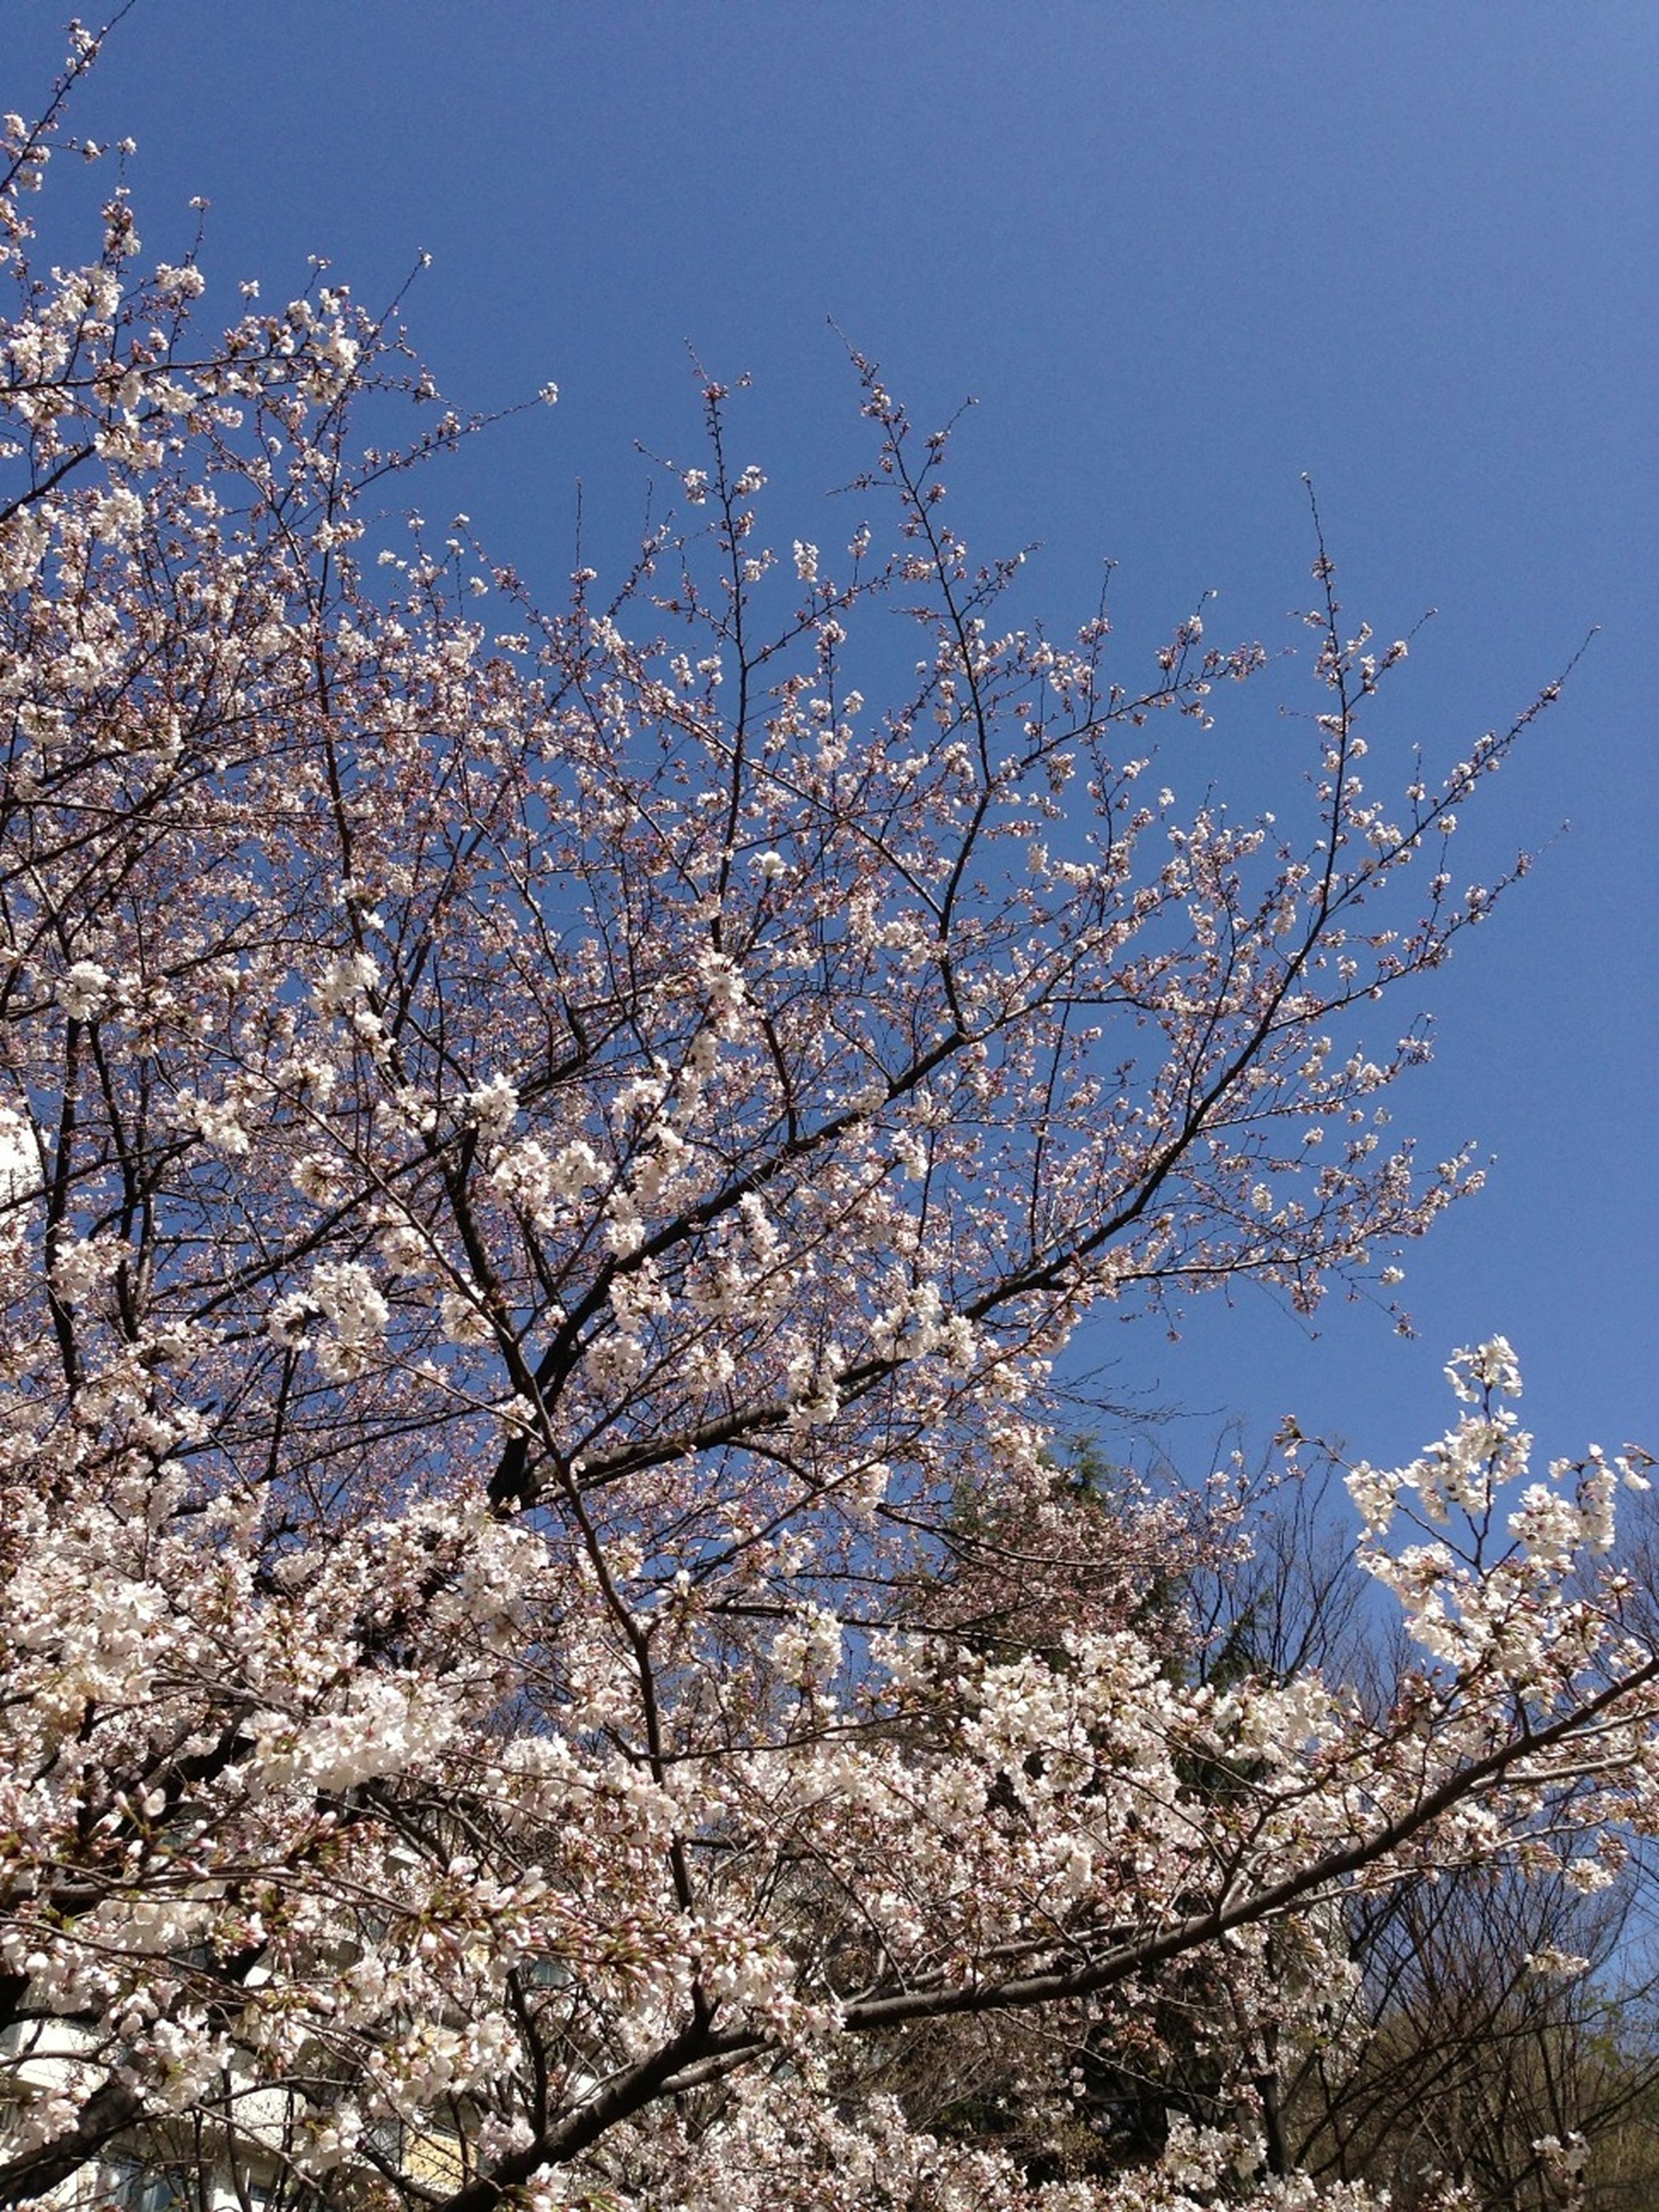 branch, tree, low angle view, flower, clear sky, growth, beauty in nature, freshness, nature, blossom, cherry blossom, cherry tree, fragility, sky, springtime, blue, bare tree, in bloom, outdoors, blooming